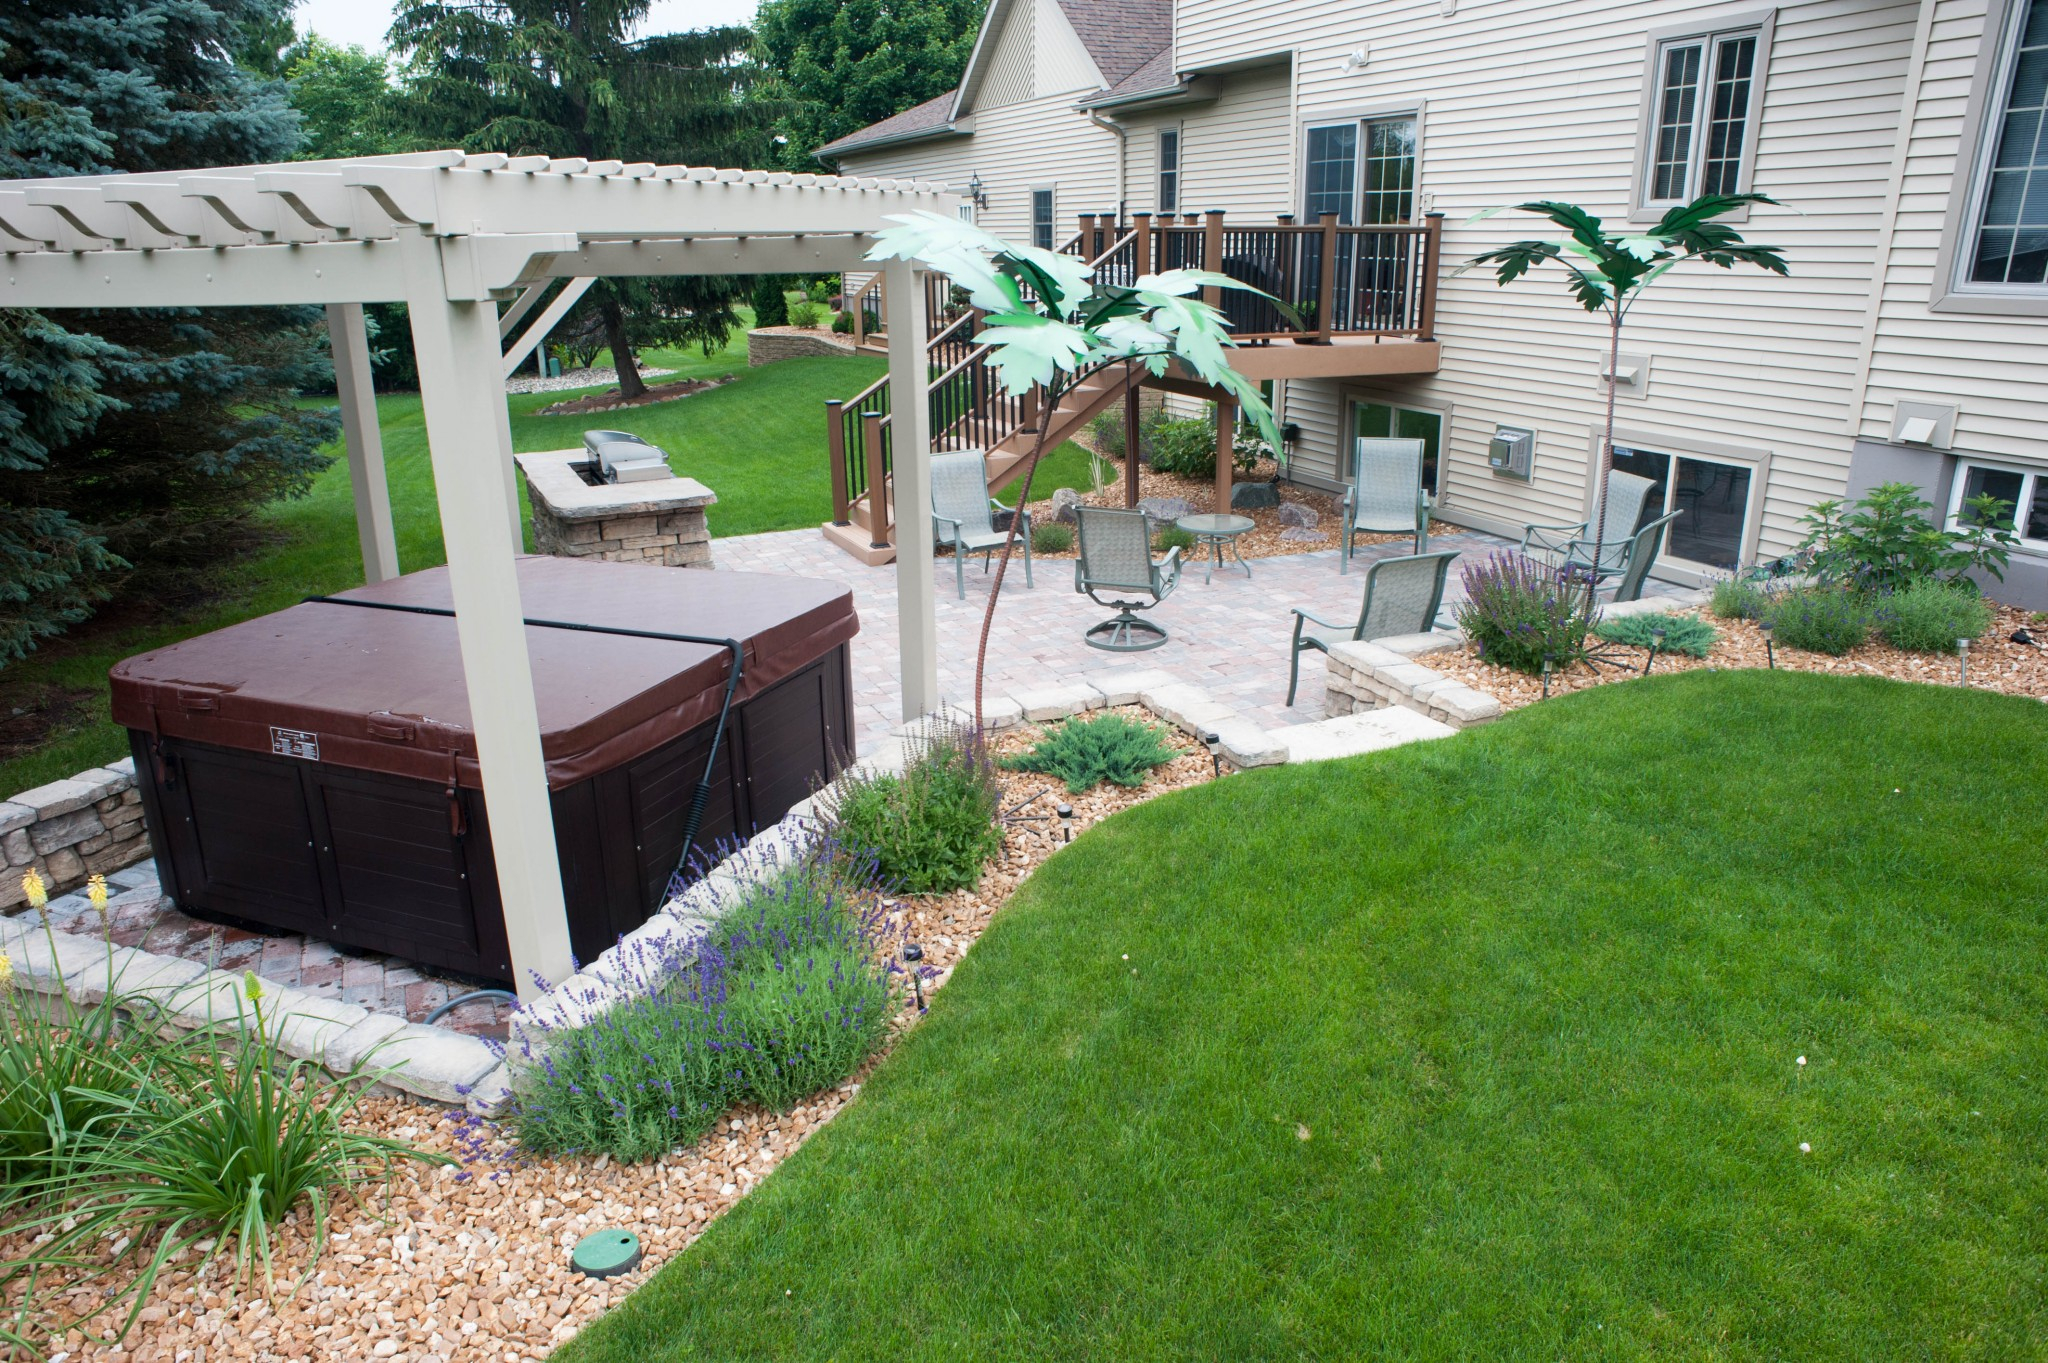 Hot Tub Designs Backyard Small Landscaping Ideas Back Yard Enclosure within 11 Some of the Coolest Designs of How to Makeover Hot Tub Backyard Ideas